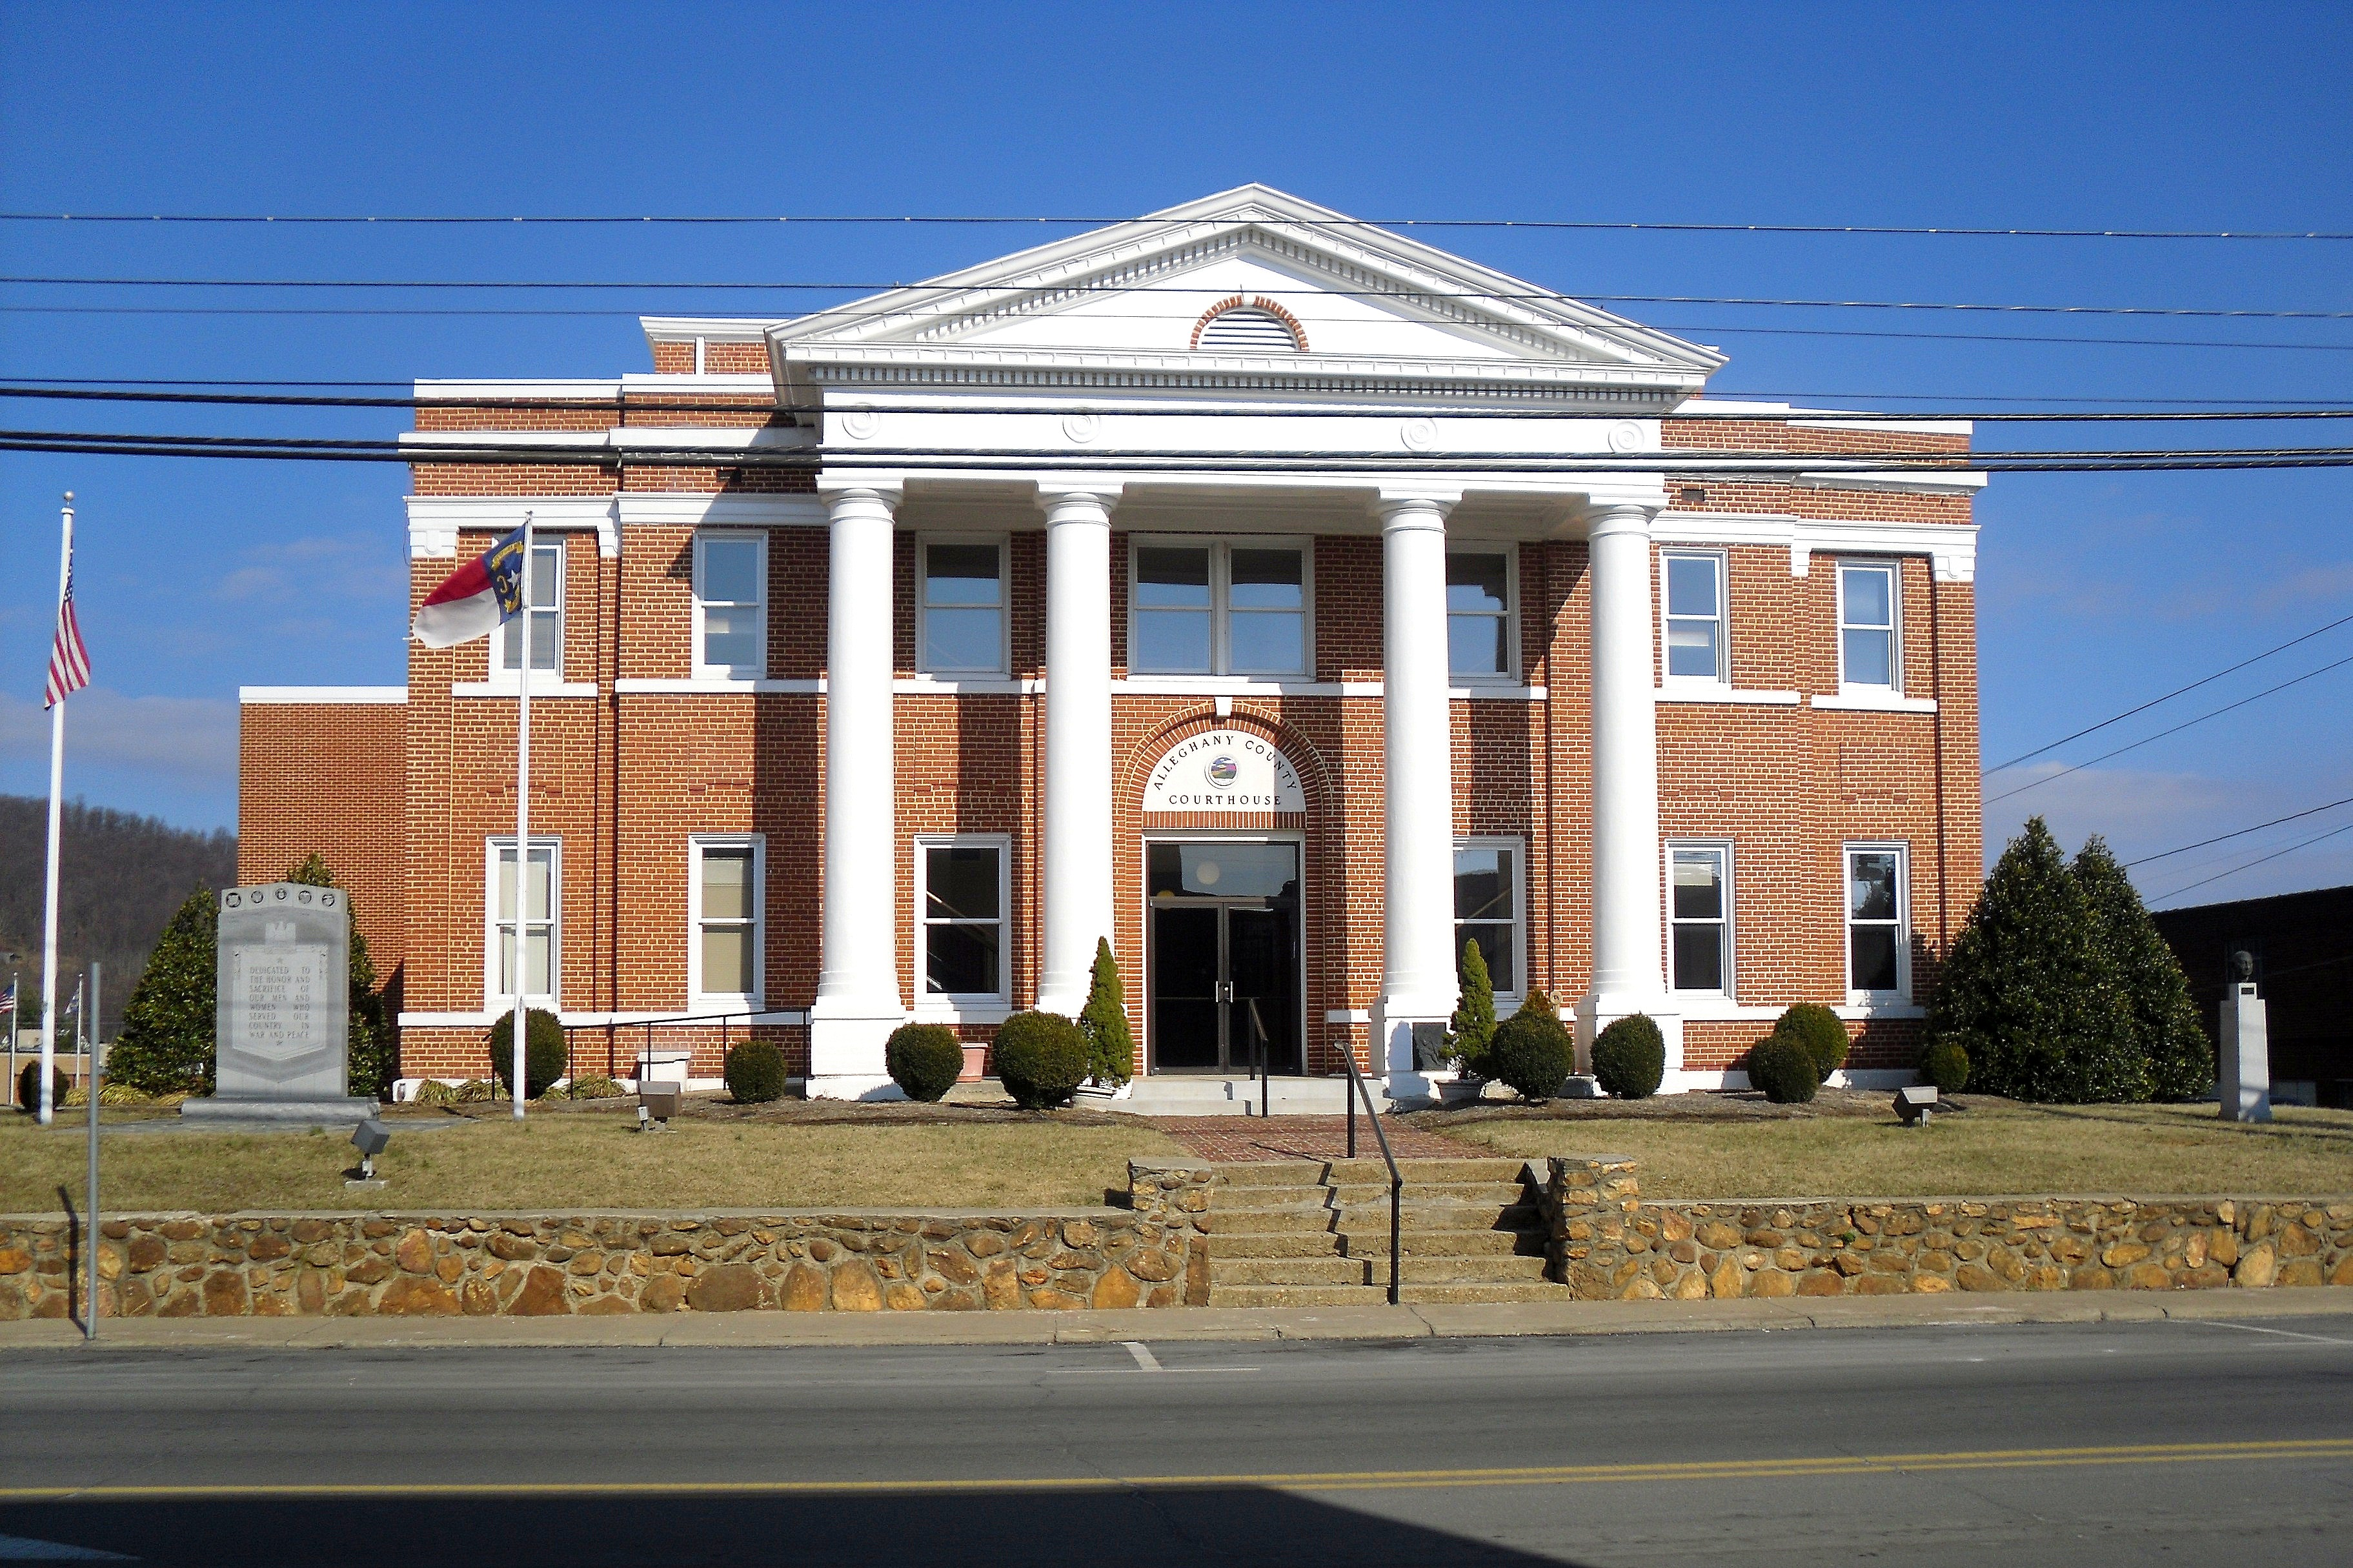 File:Alleghany County Courthouse Sparta NC.jpg - Wikimedia Commonsbalance of alleghany county